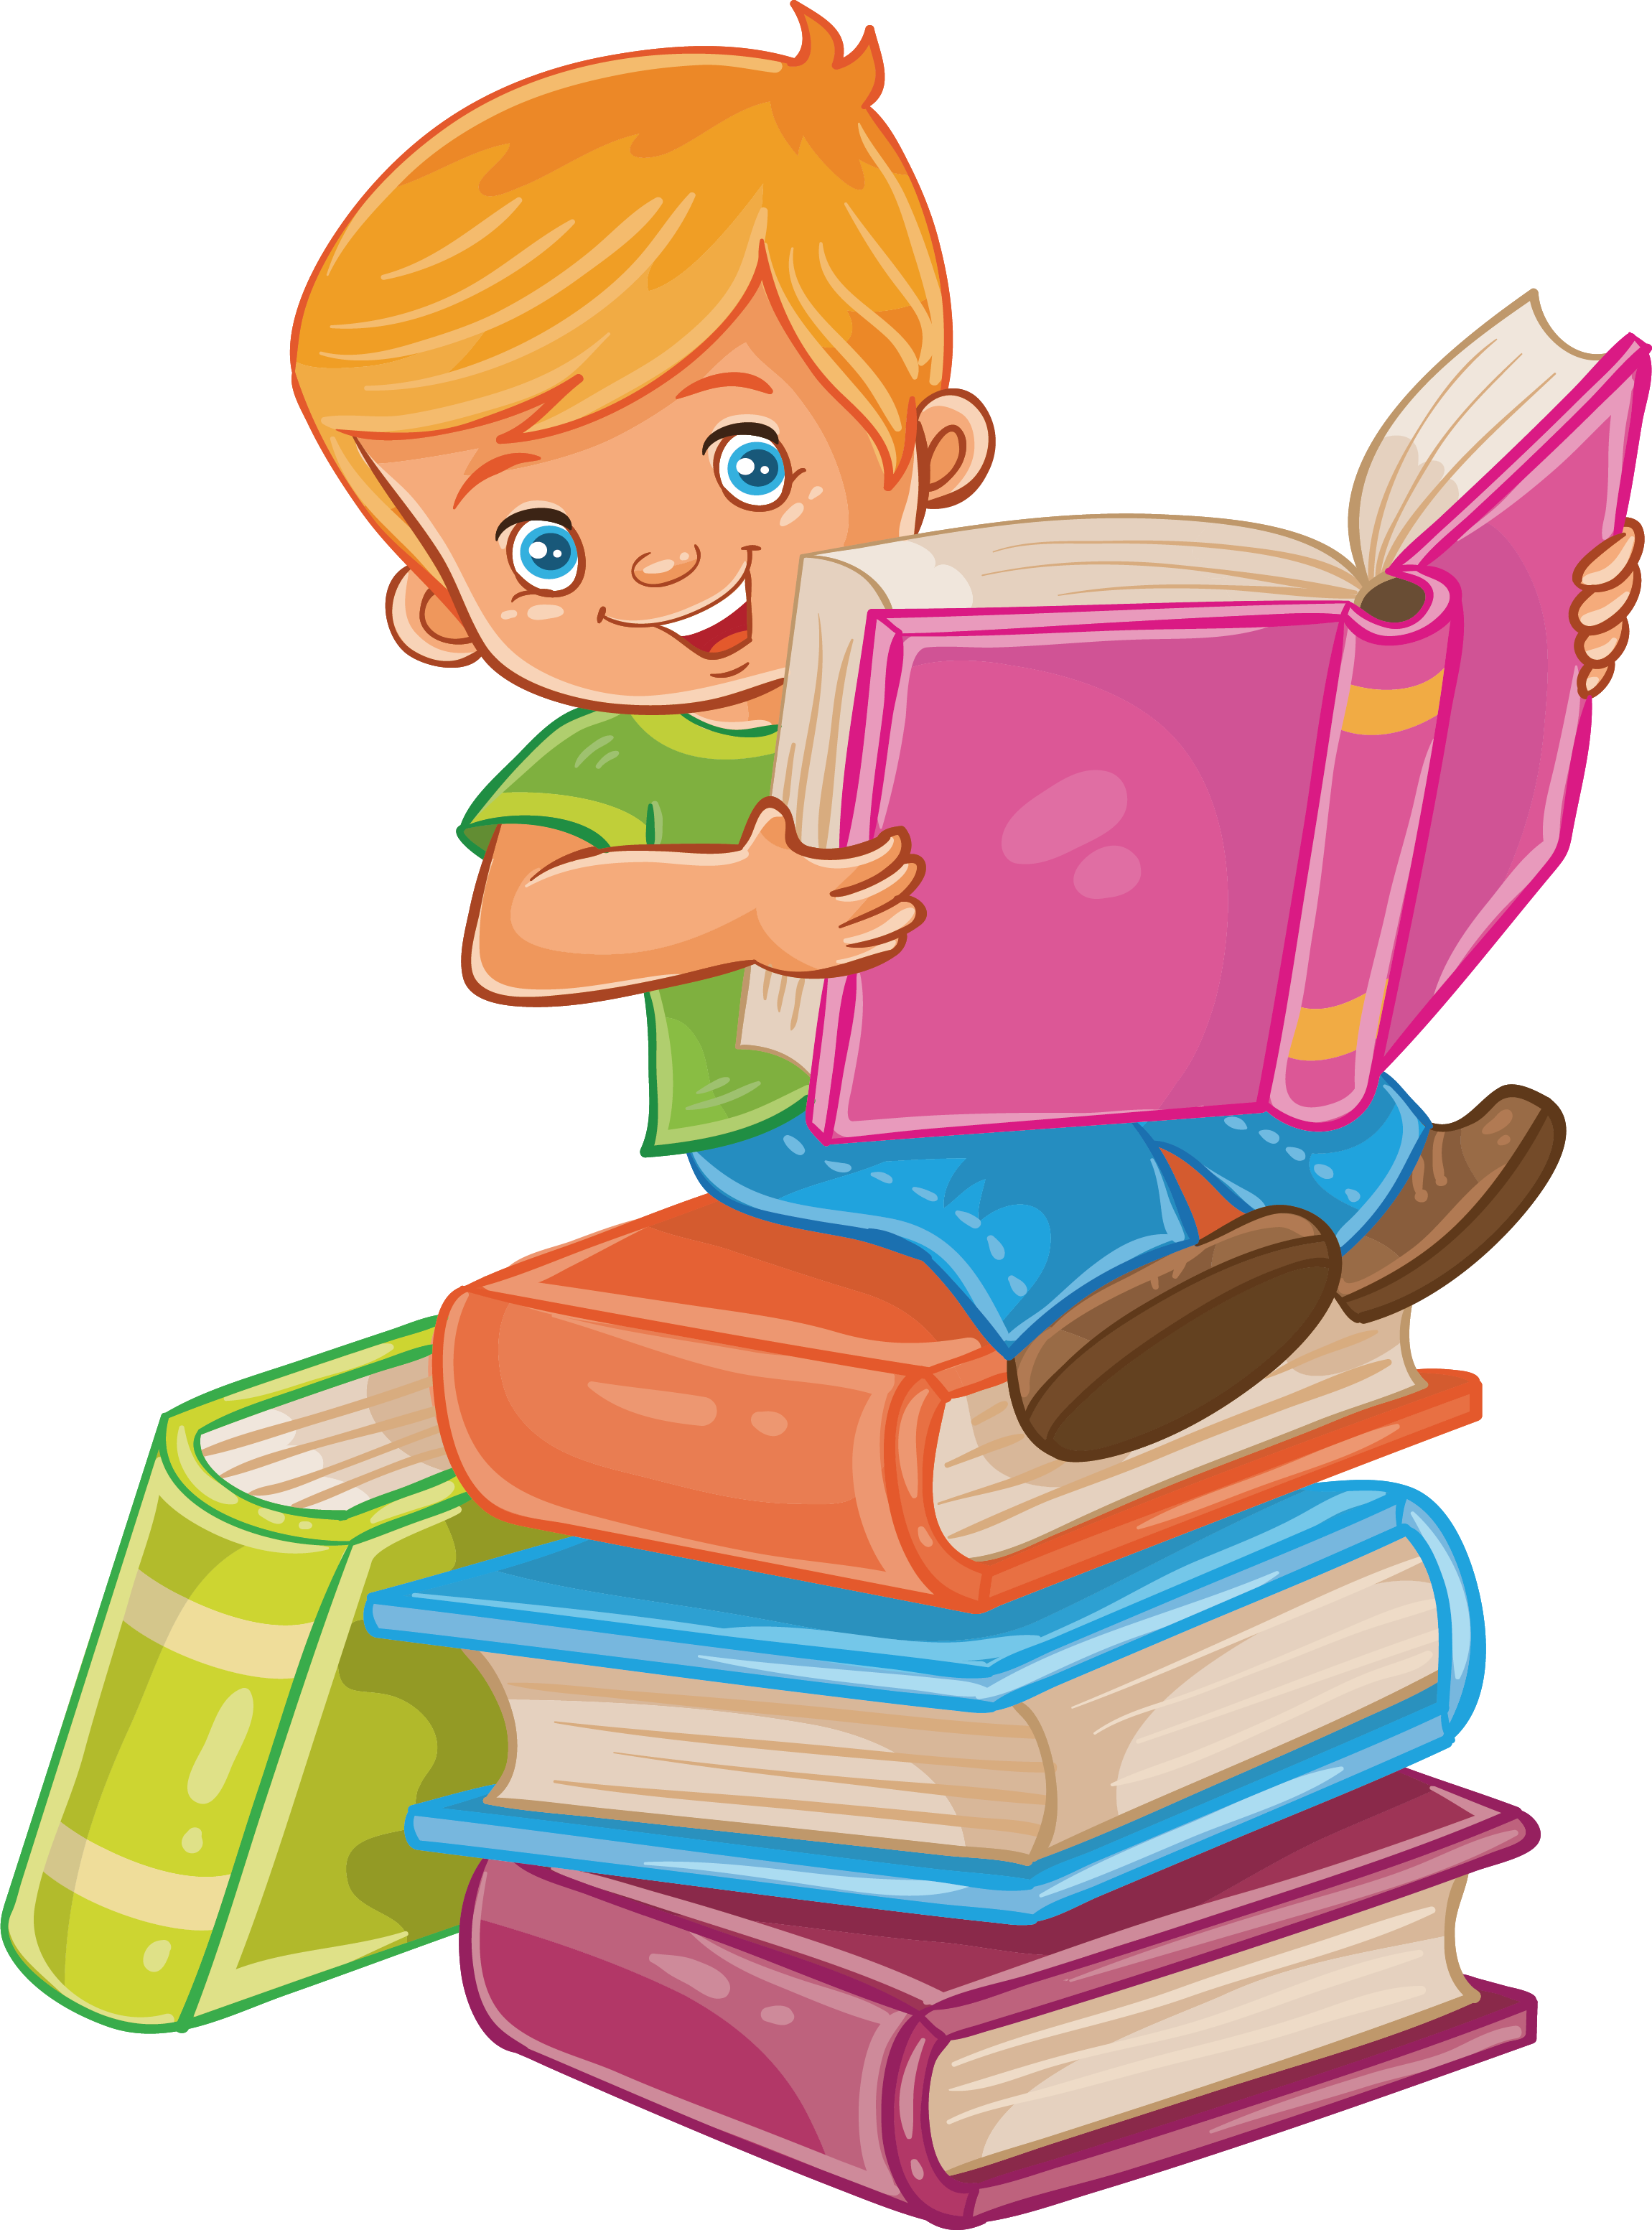 Reading vector pile book. Child royalty free illustration